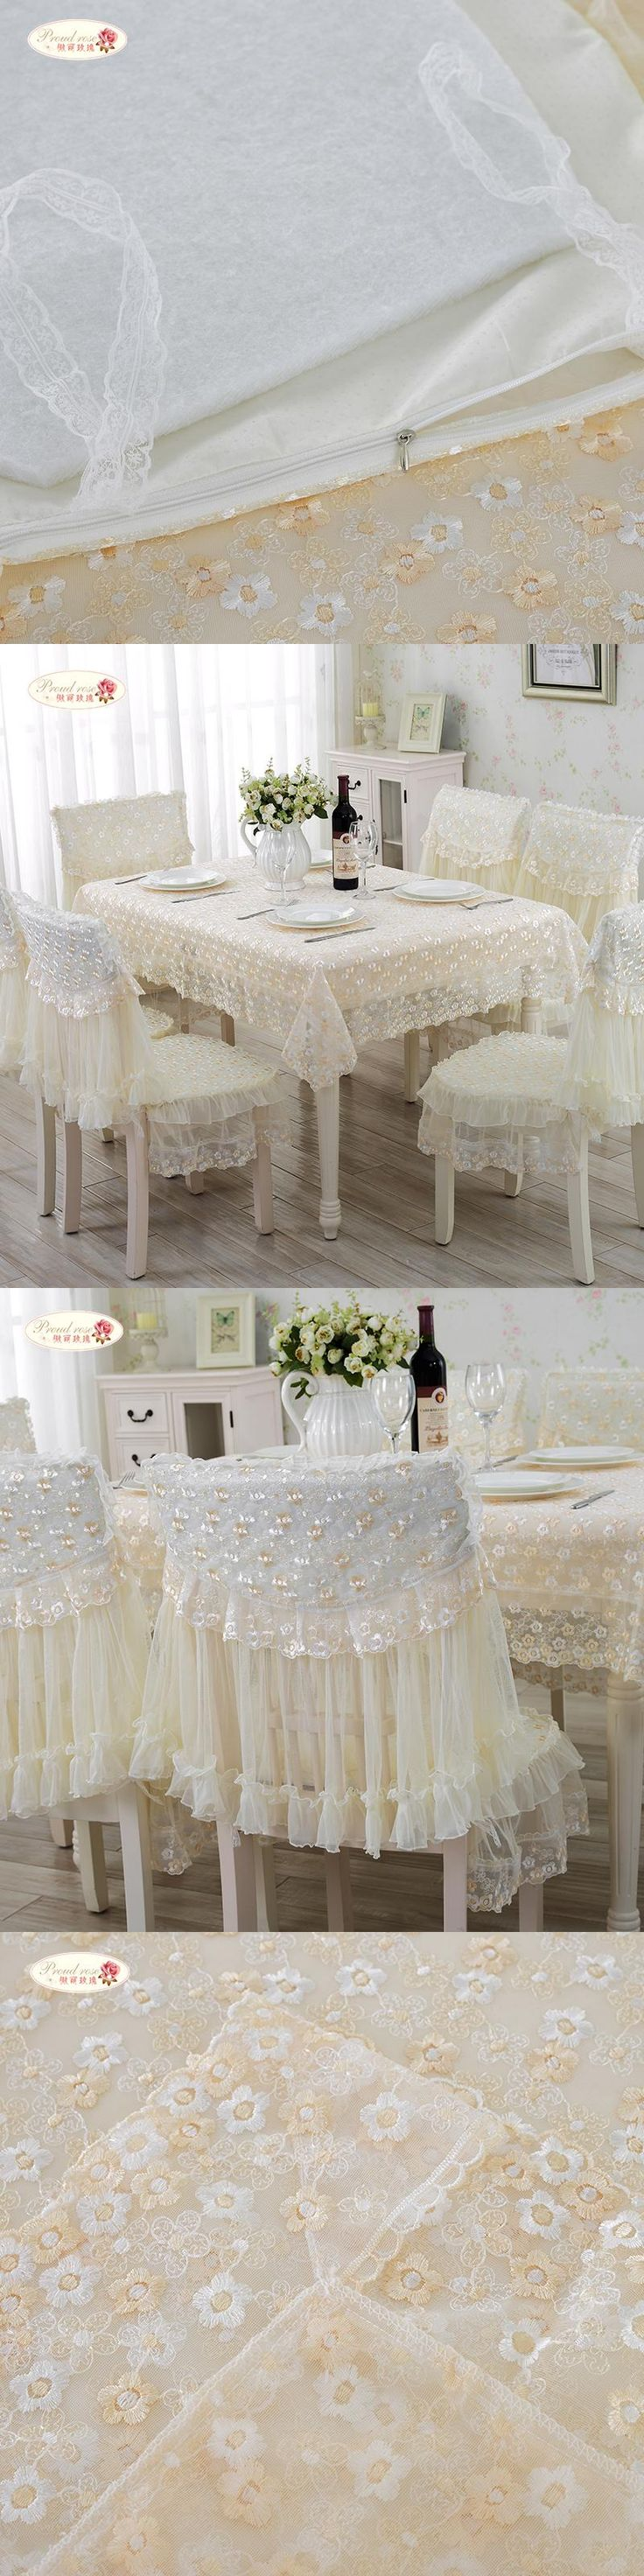 Proud Rose European Rural Lace Table Cloth Lace Tablecloth Chair Cover  Modern Household Adornment Tablecloth Chair